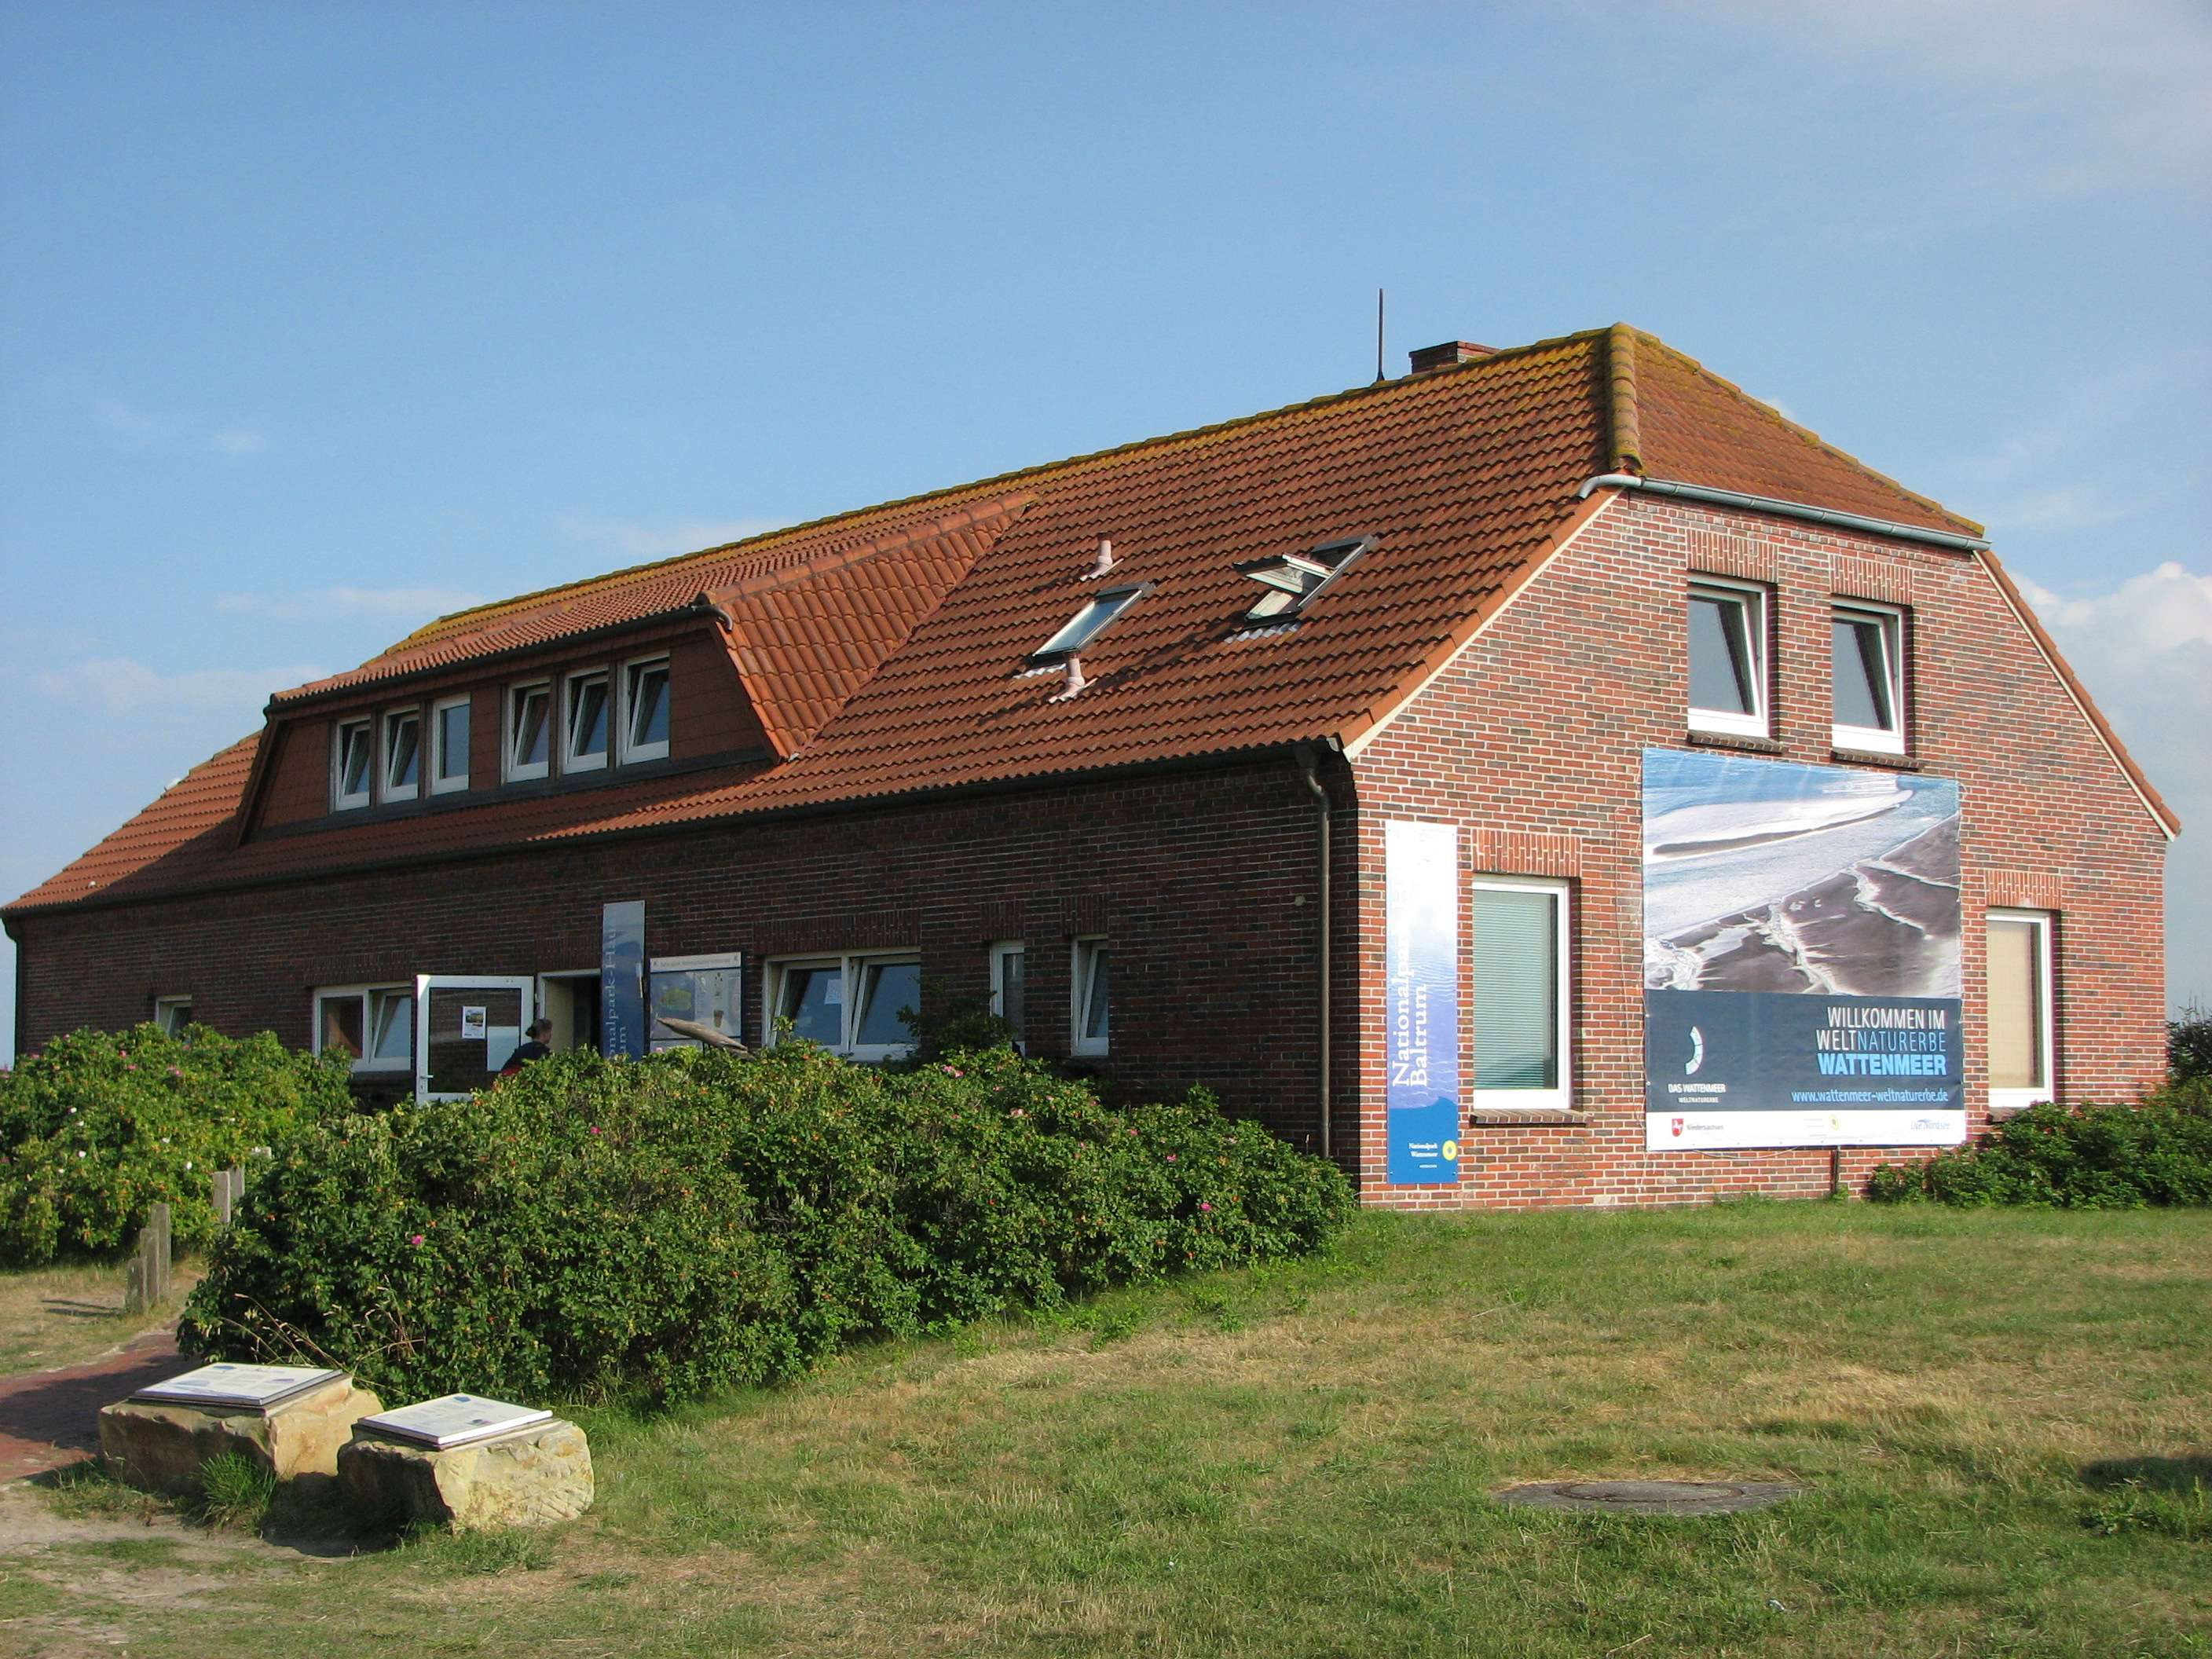 Nationalpark-Haus Baltrum, Gezeitenhaus